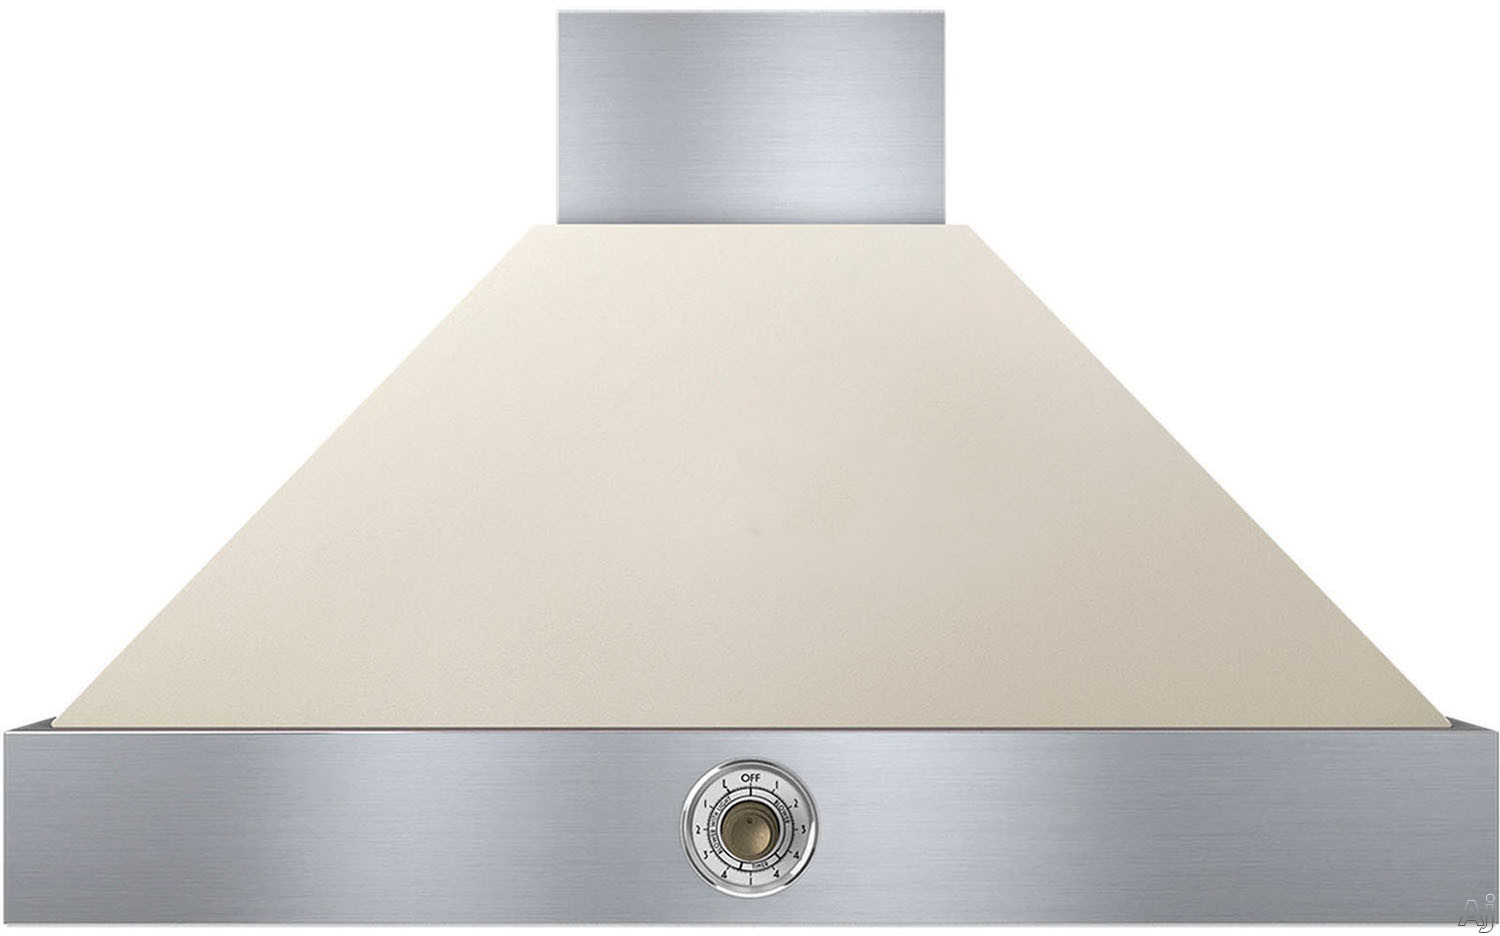 Superiore Deco Series HD361ACCB 36 Inch Wall Mount Canopy Hood with 600 CFM Blower, 4 Speed Settings, 3 Dishwasher Safe Baffle Filters, 2 Halogen Lights, 58 dBA Noise Level and Automatic Shut-Off: Cre